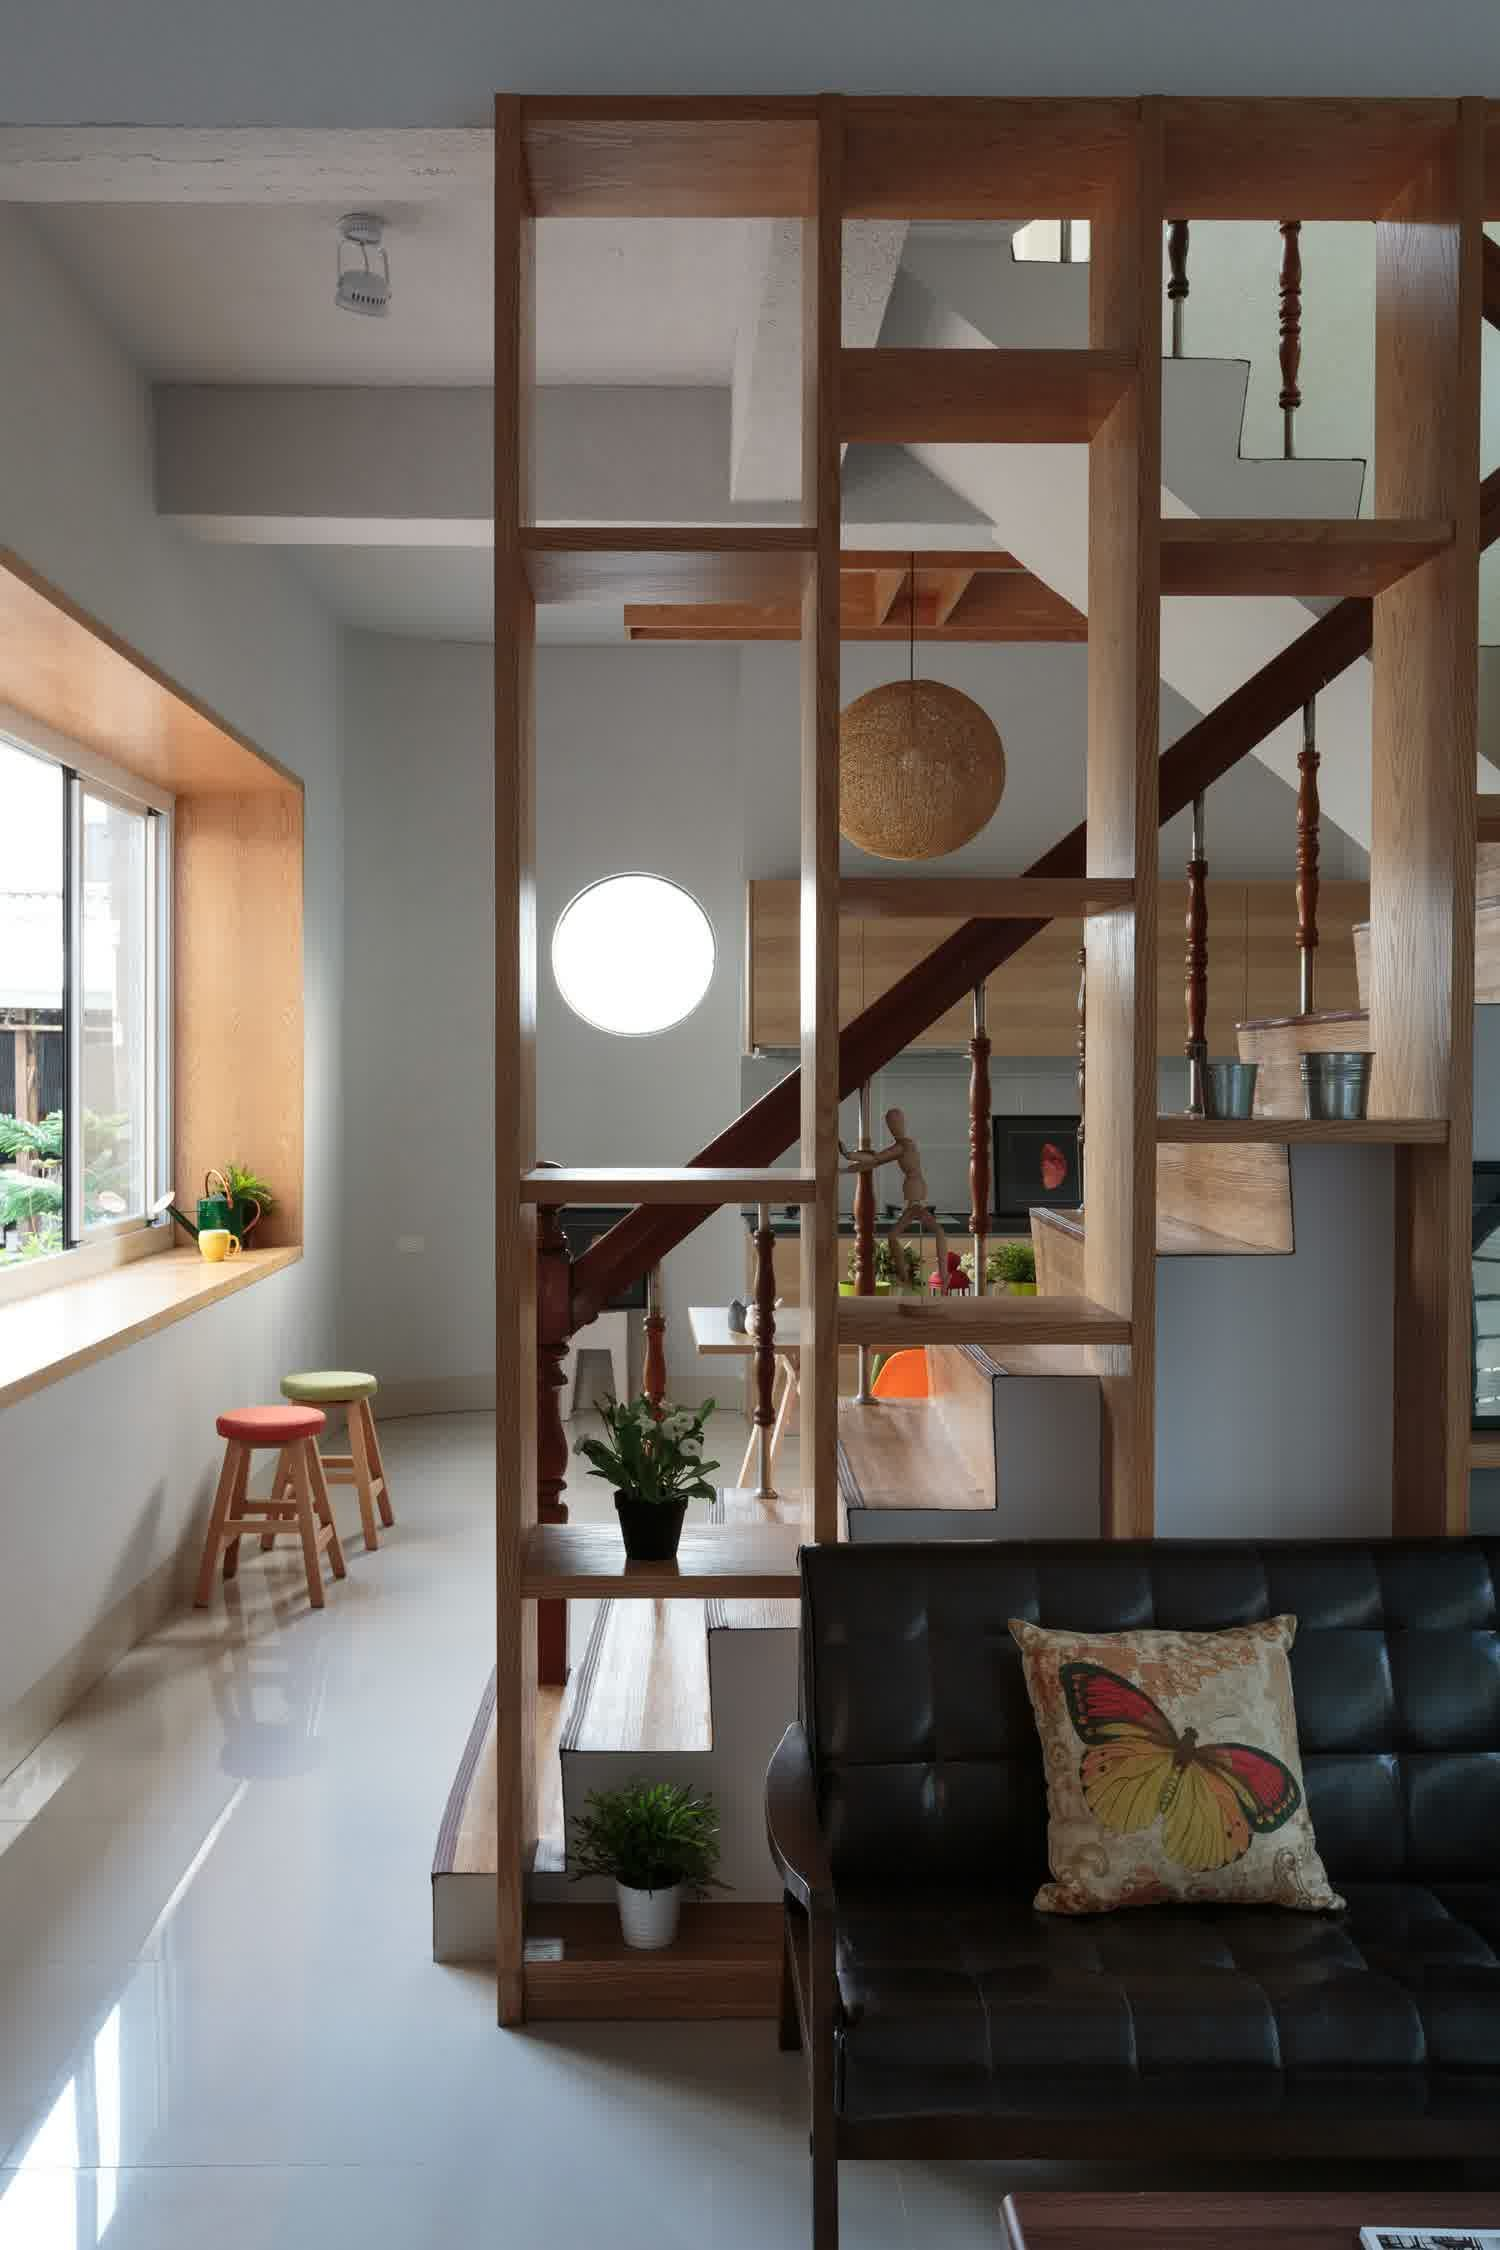 Wood Wall Planter Shelf As Room Divider Renovated Living Design   Partition Of Stairs In Living Room   Lobby   Storage   Open Plan   Divider   Wood Paneling